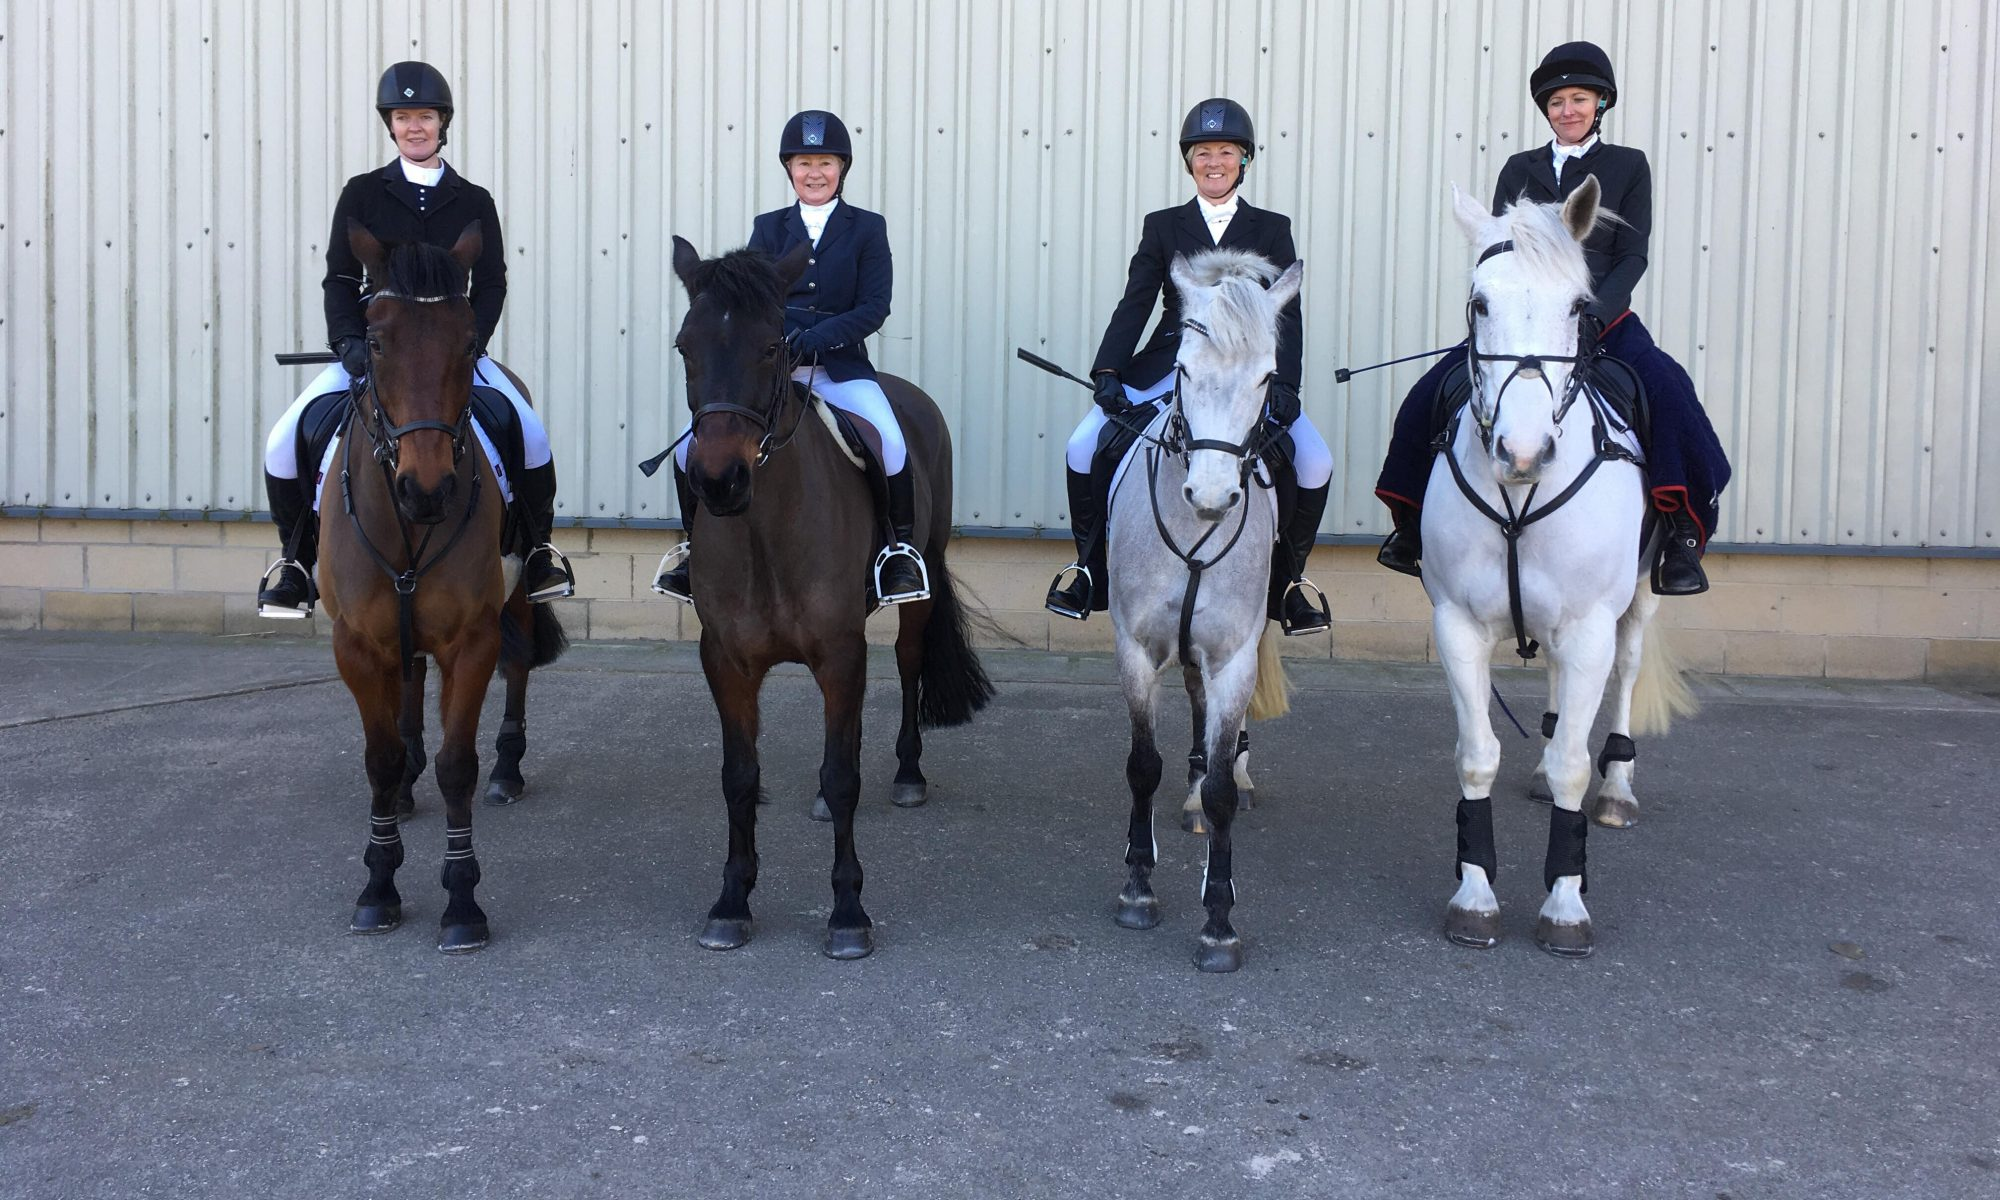 Ebor Vale Riding Club